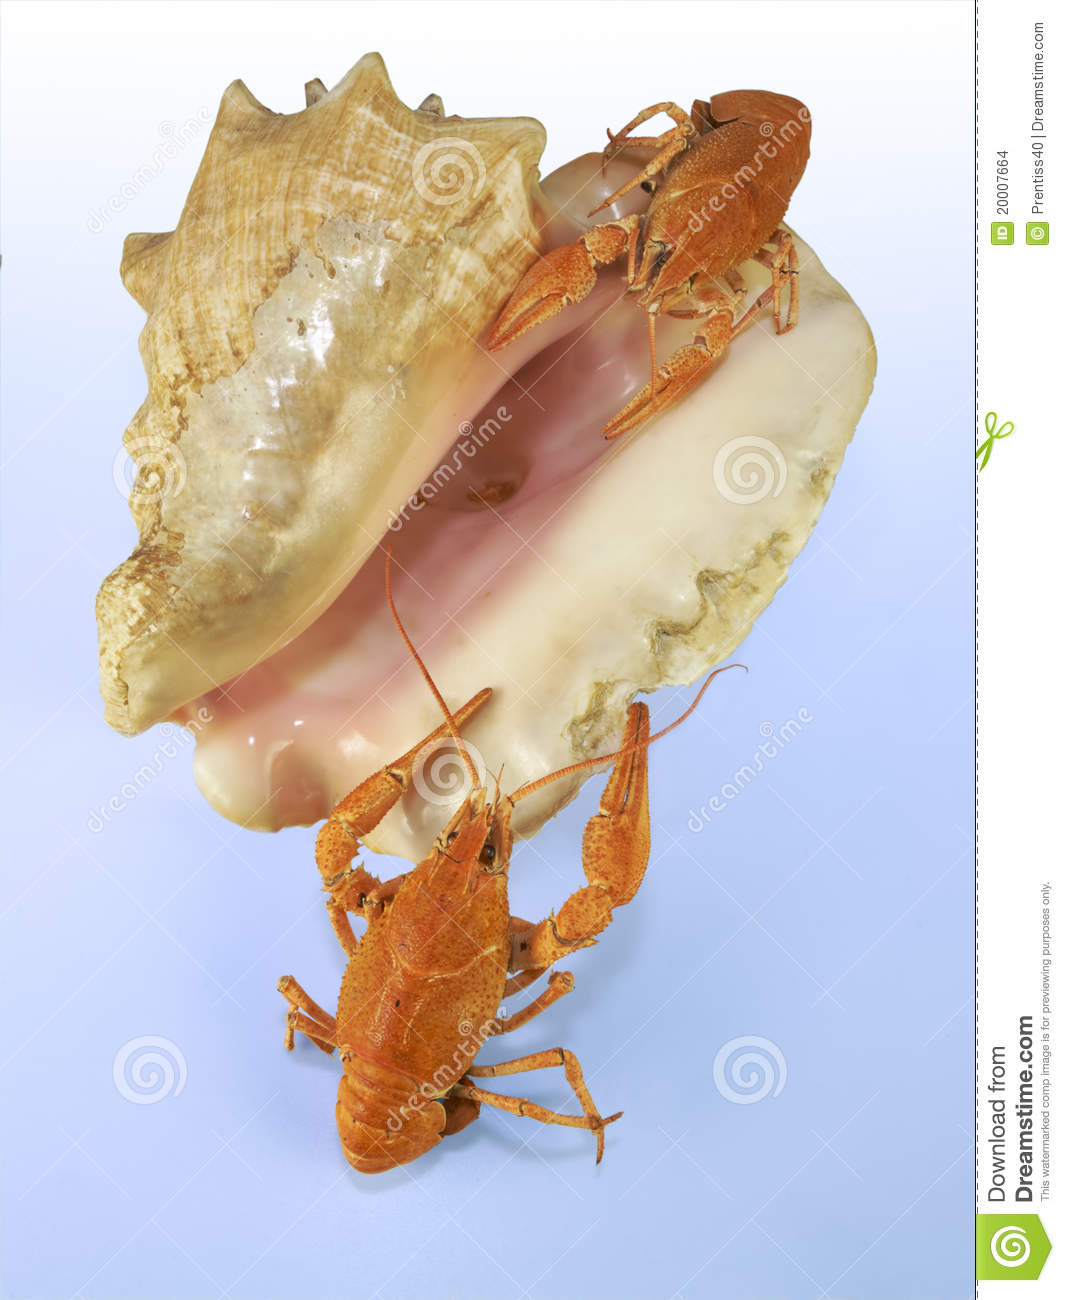 Crawfihes no seashell